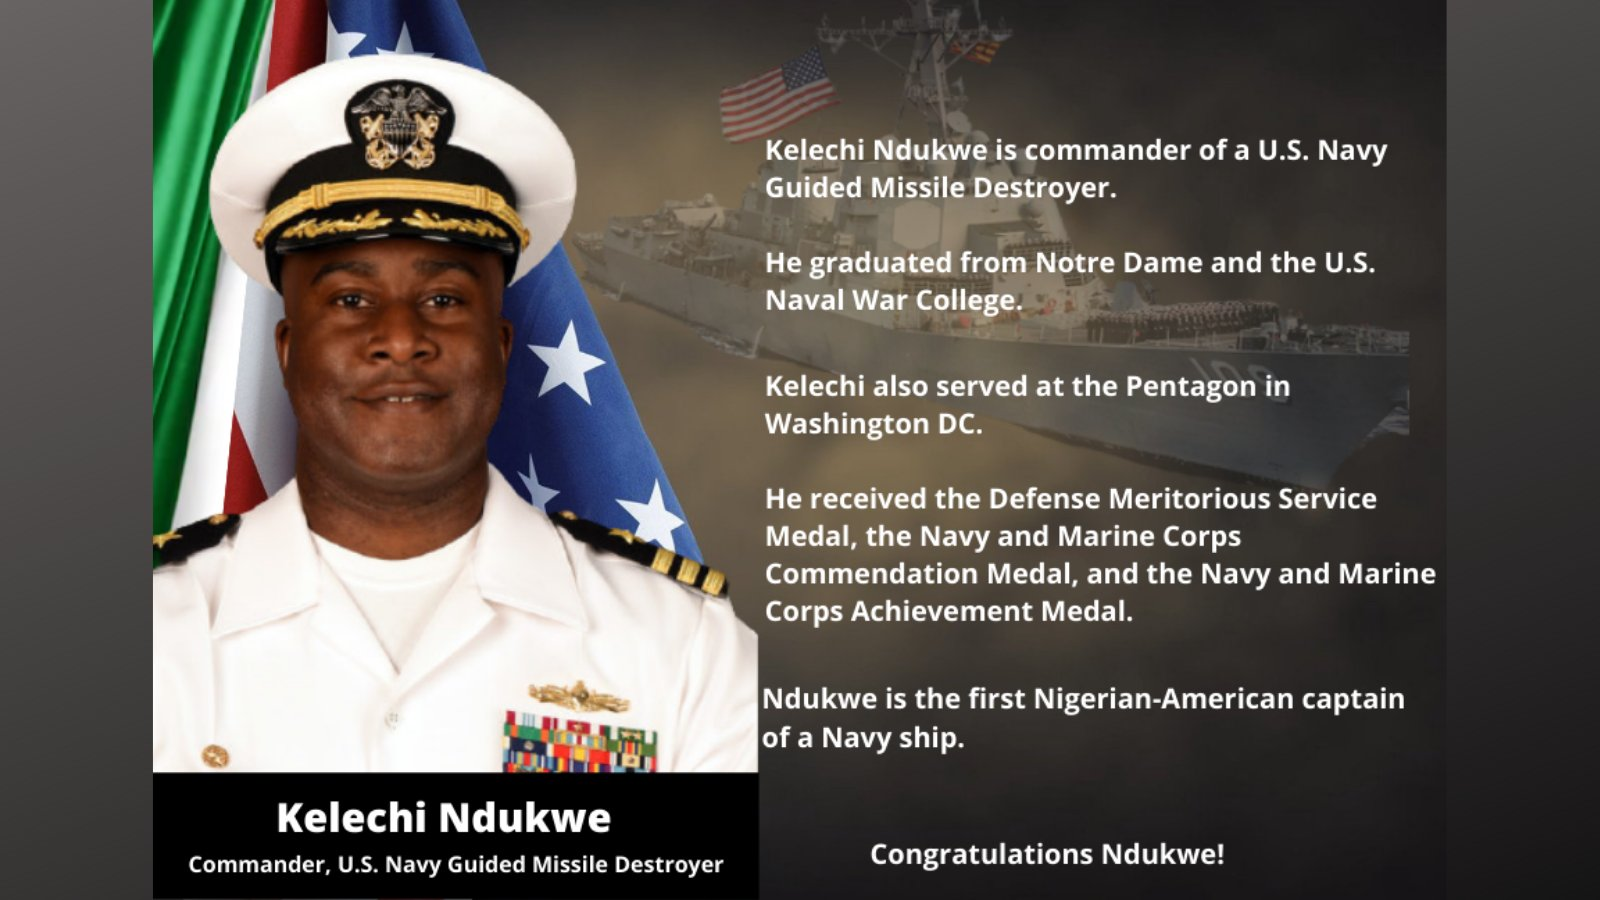 Kelechi Ndukwe Appointed First Nigerian-American Captain Of U.S. Navy Ship